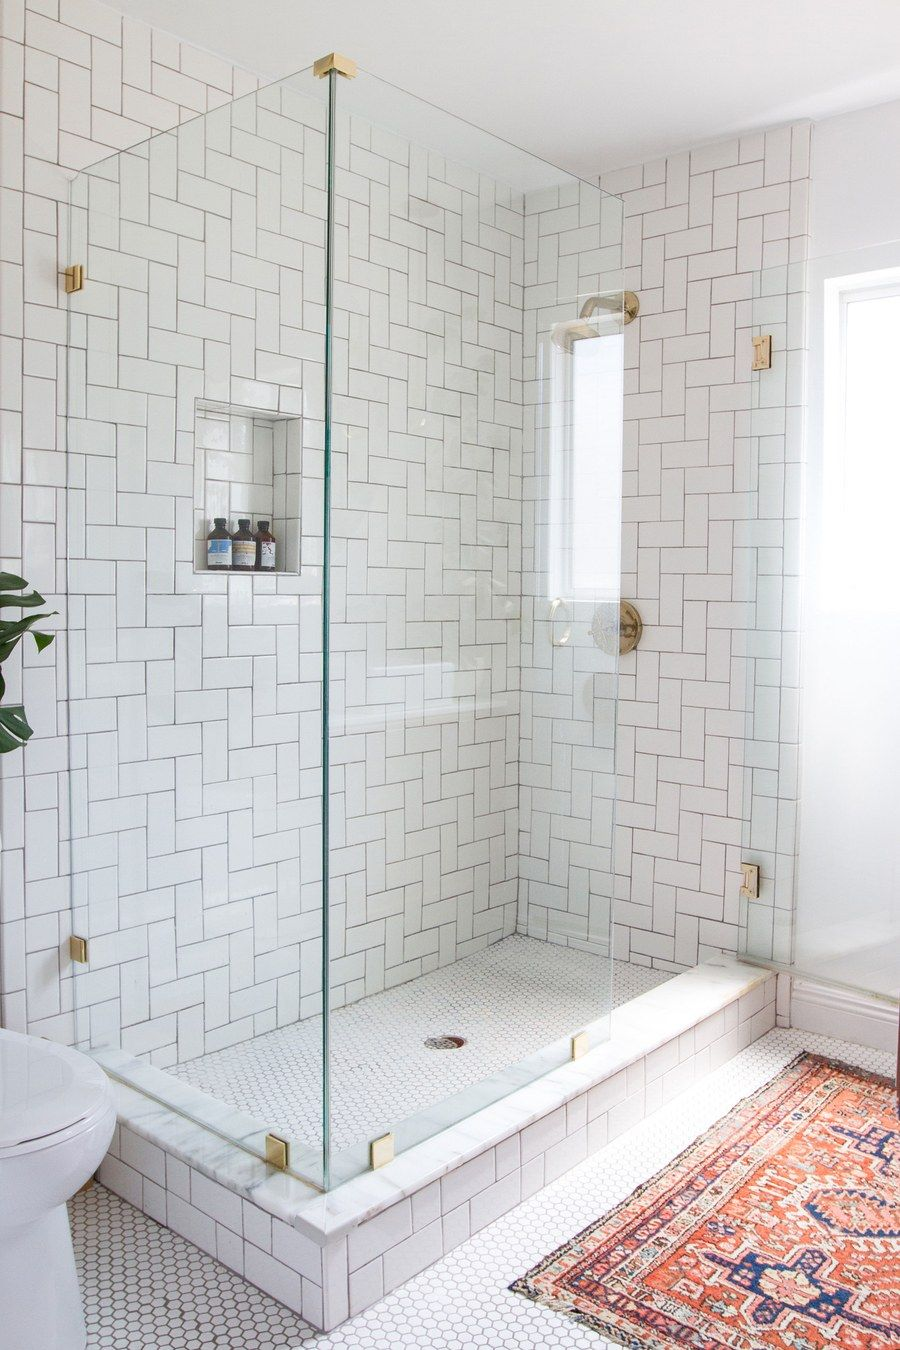 If You Are Renovating Make Sure To Include A Builtin Niche Says - Renovating a bathroom what to do first